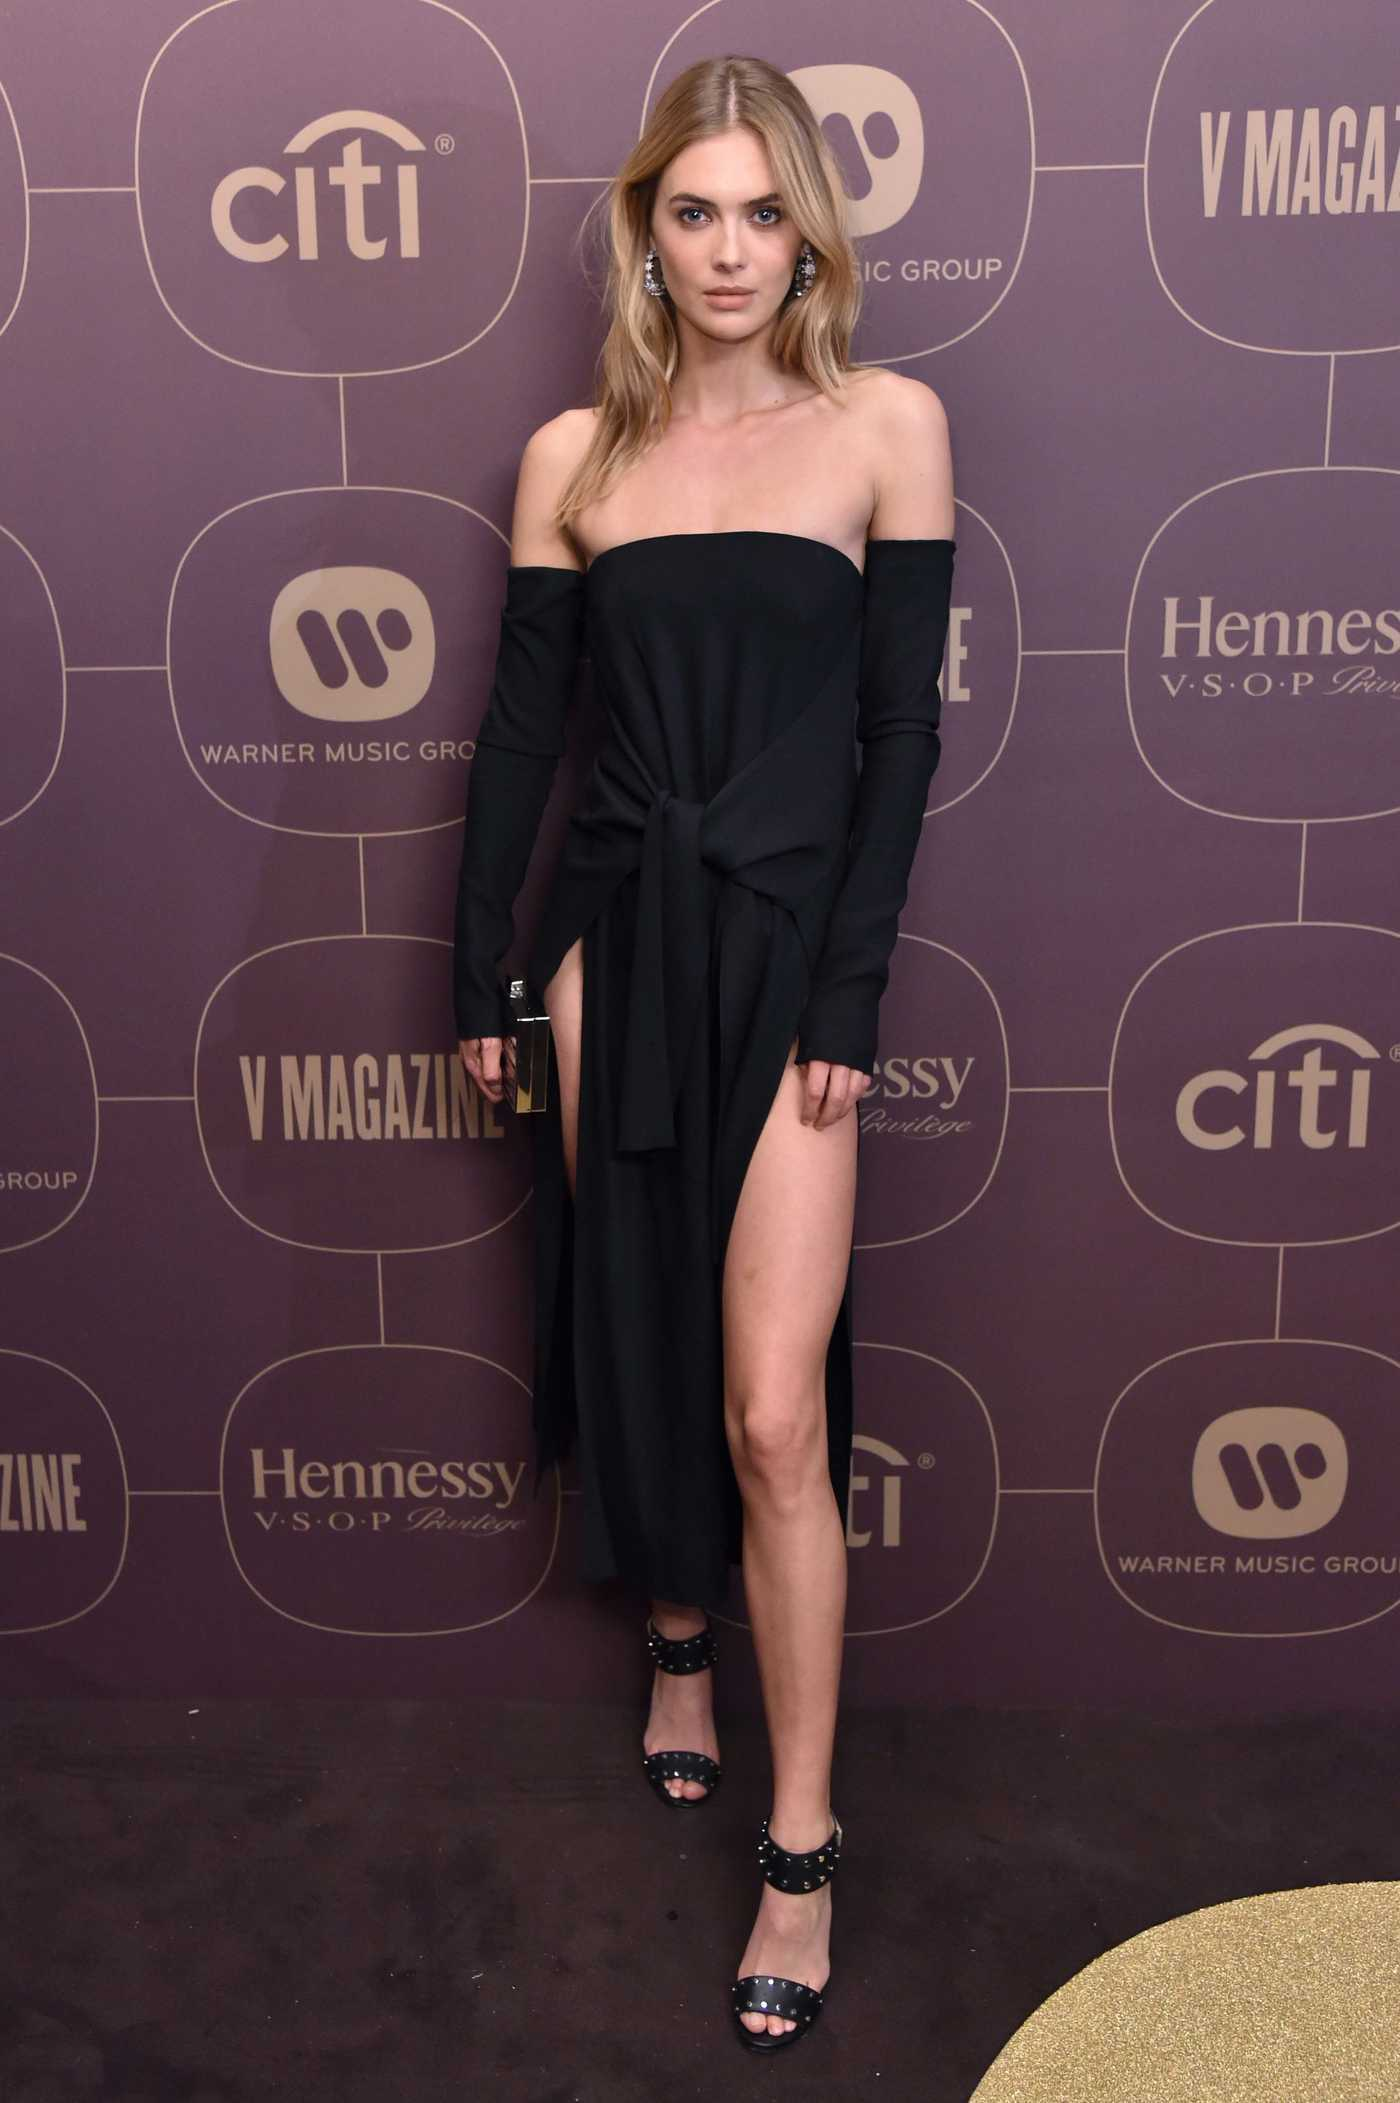 Megan Williams at Warner Music Pre-Grammy Party in New York City 01/25/2018